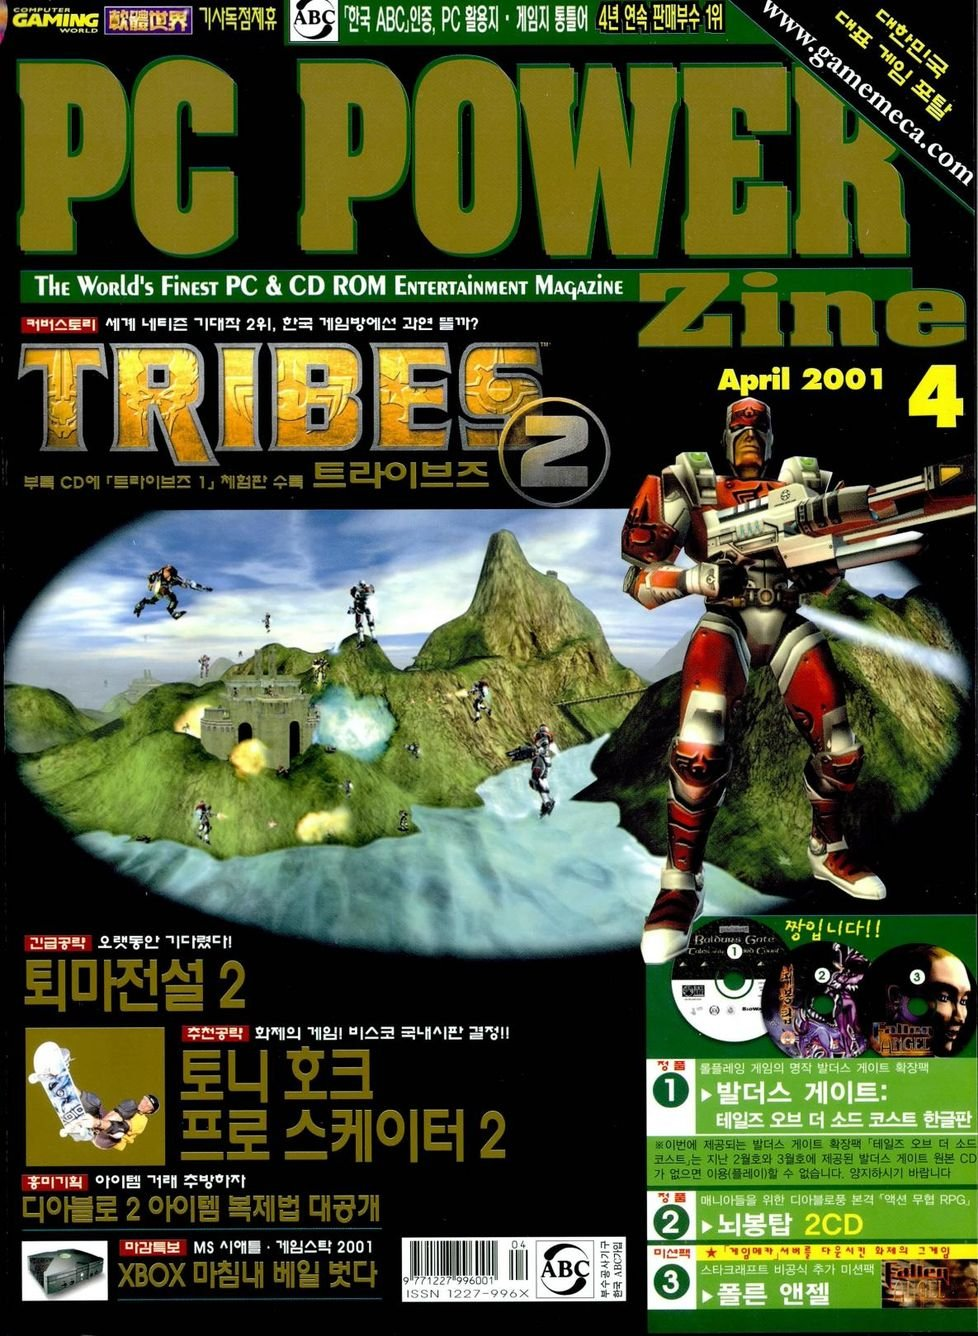 PC Power Zine Issue 069 (April 2001)